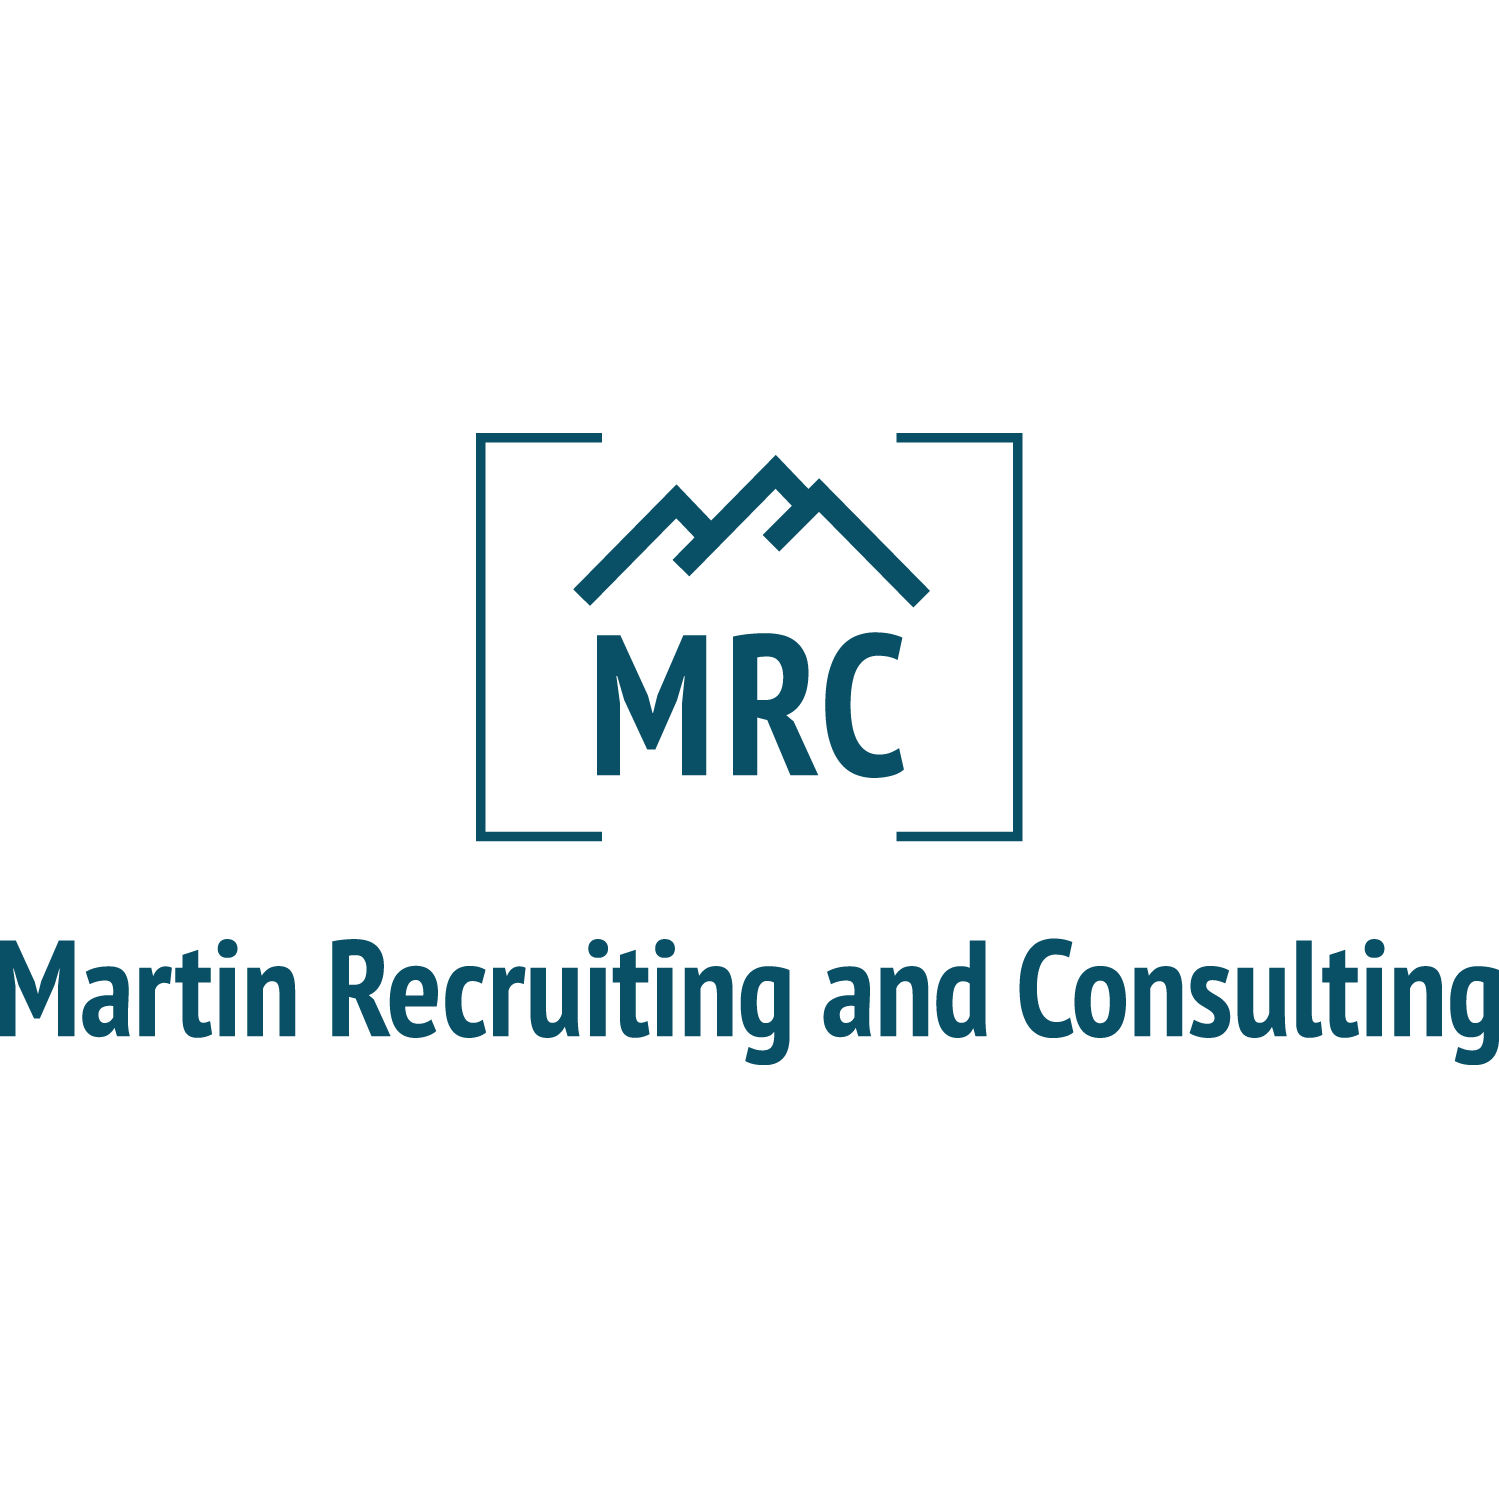 Martin Recruiting and Consulting